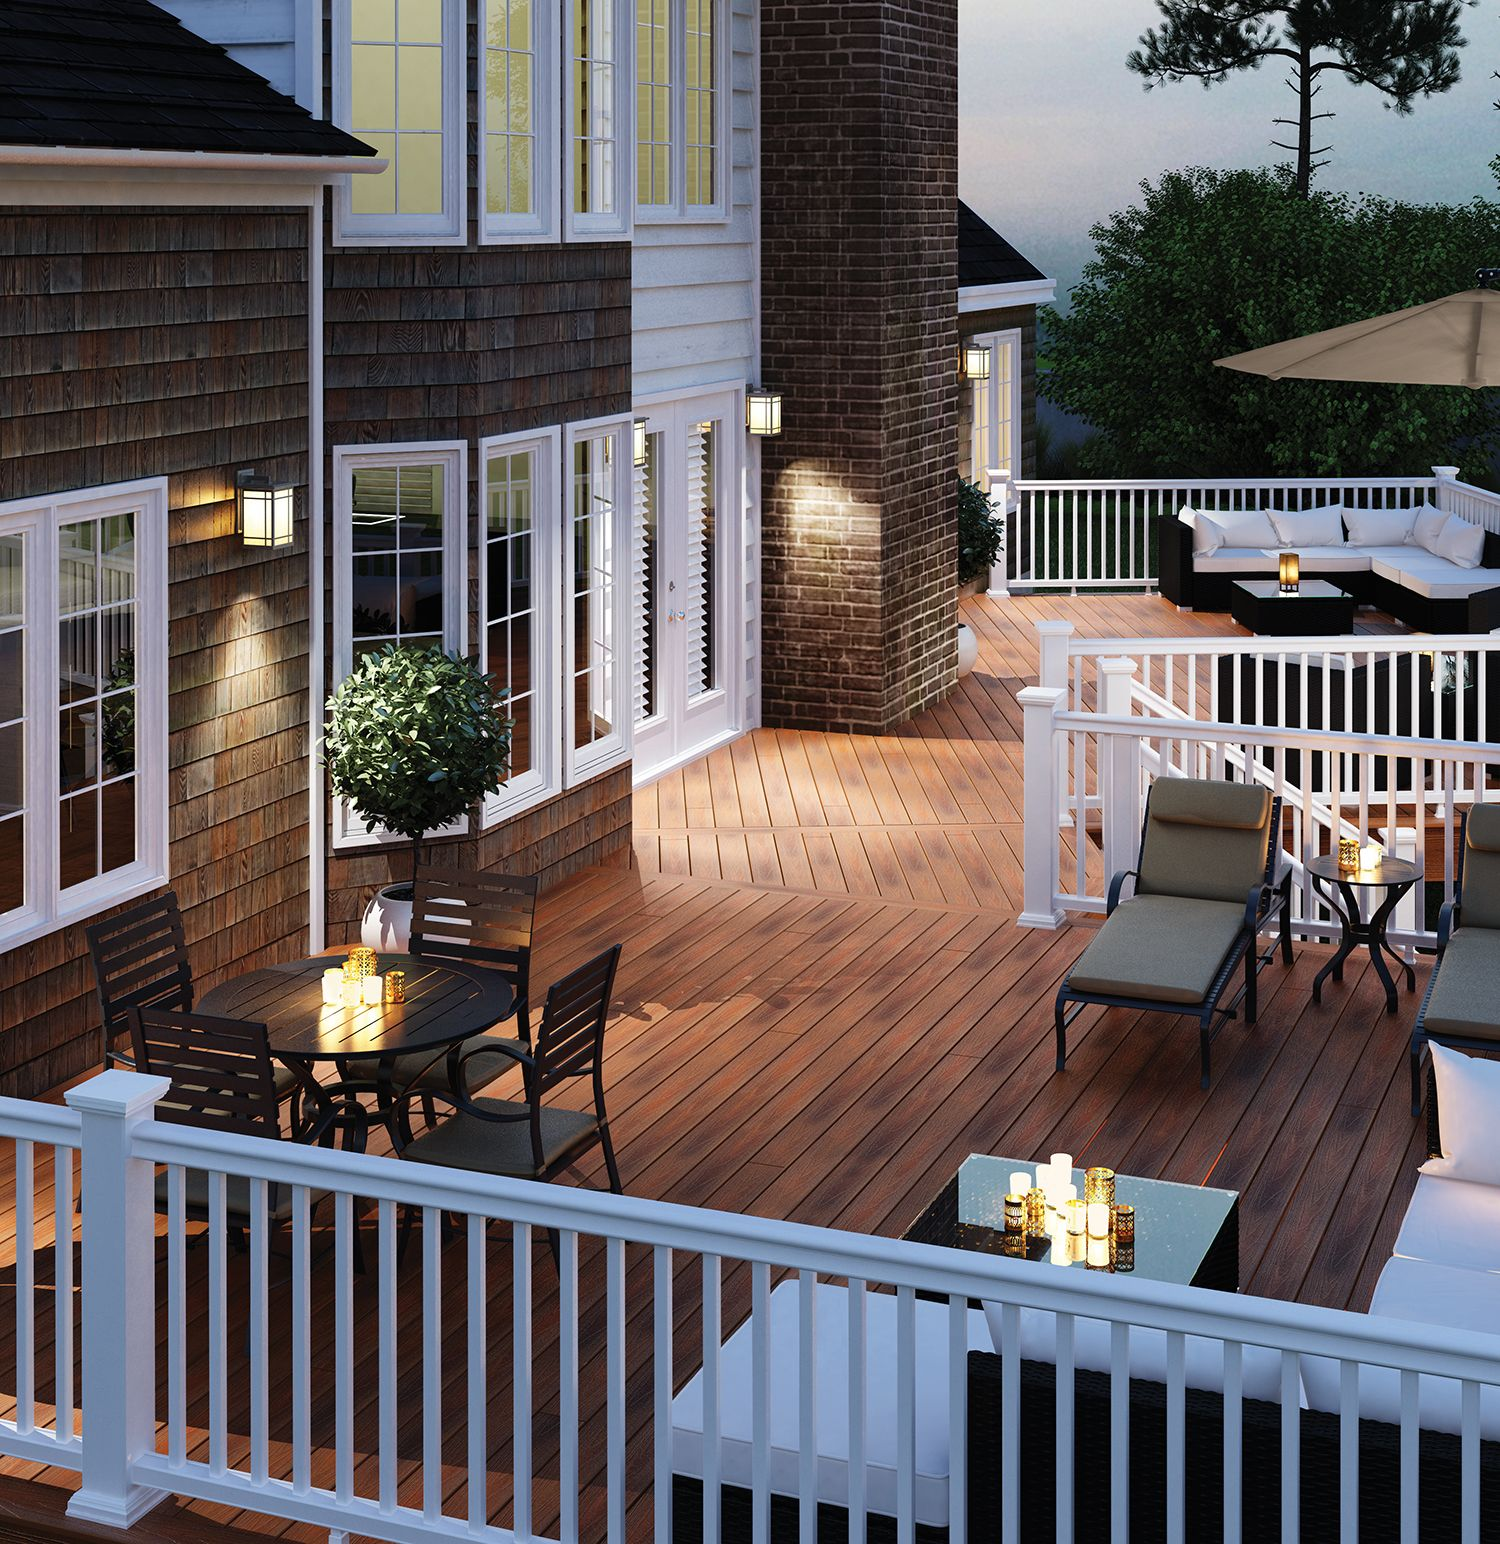 NJ Trex deck with white rails cedar shake siding beautiful patio furniture